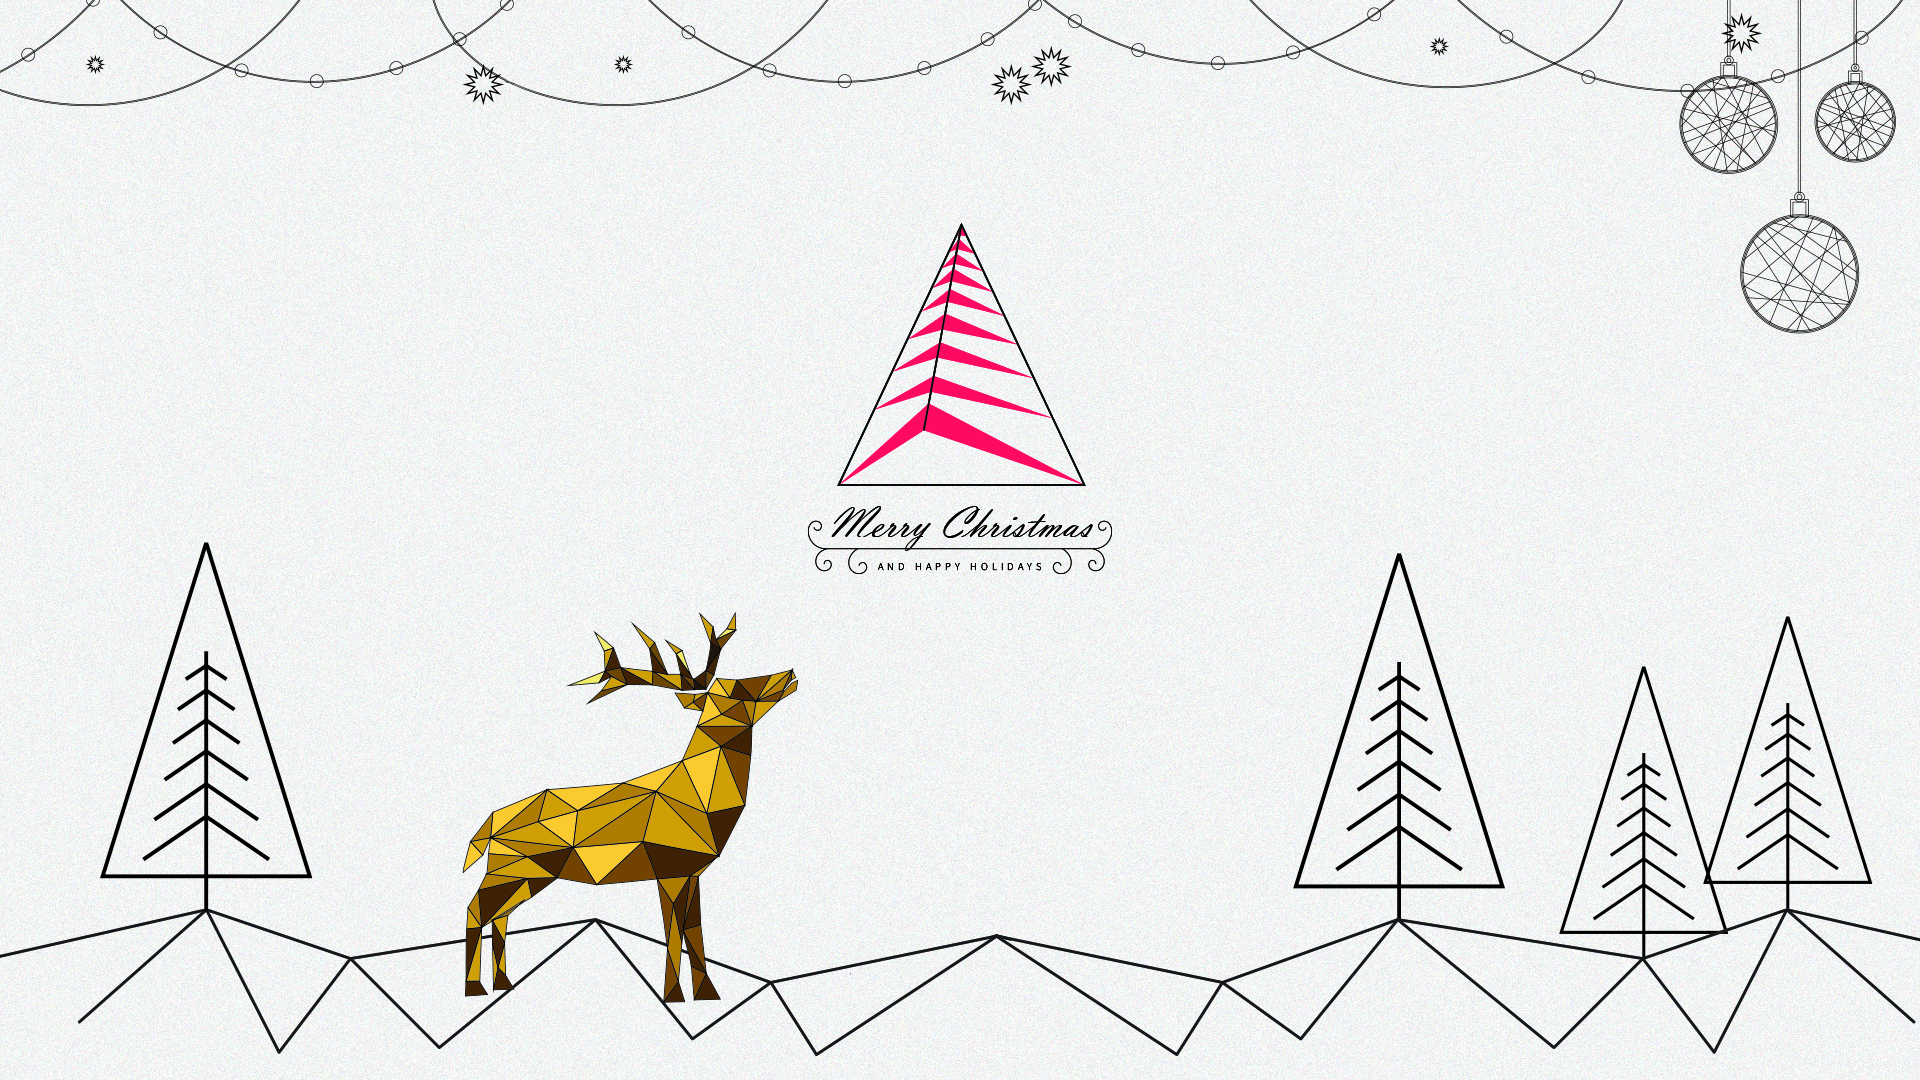 Christmas & New Years Wishes | Graphic by United-BIM